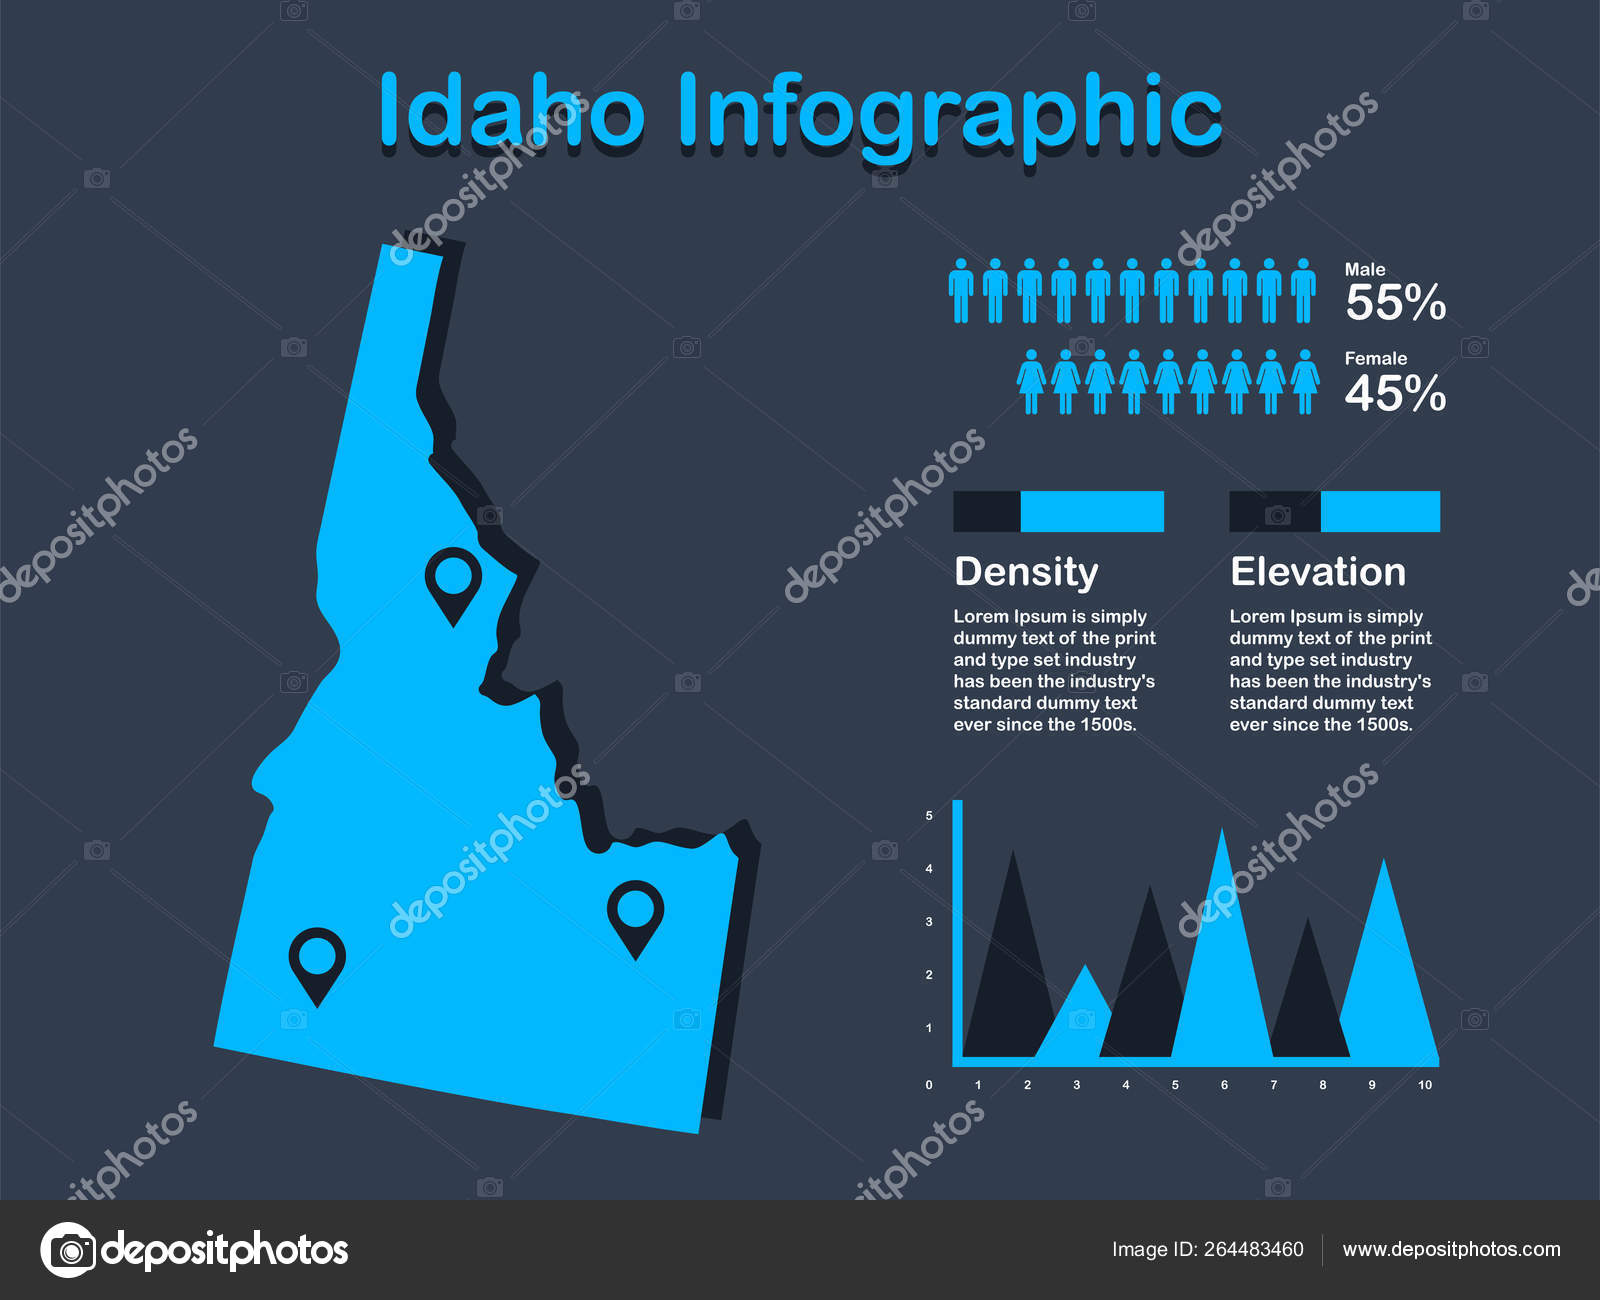 Idaho State (USA) Map with Set of Infographic Elements in Blue Color on mississippi map usa, wisconsin map usa, iowa map usa, oklahoma map usa, connecticut map usa, colorado map usa, new york on map of usa, tulsa map usa, oregon map usa, idaho downtown map usa, yale map usa, california map usa, houston map usa, virginia map usa, unlv map usa, cal poly map usa, ohio map usa, florida map usa, michigan map usa, minnesota map usa,